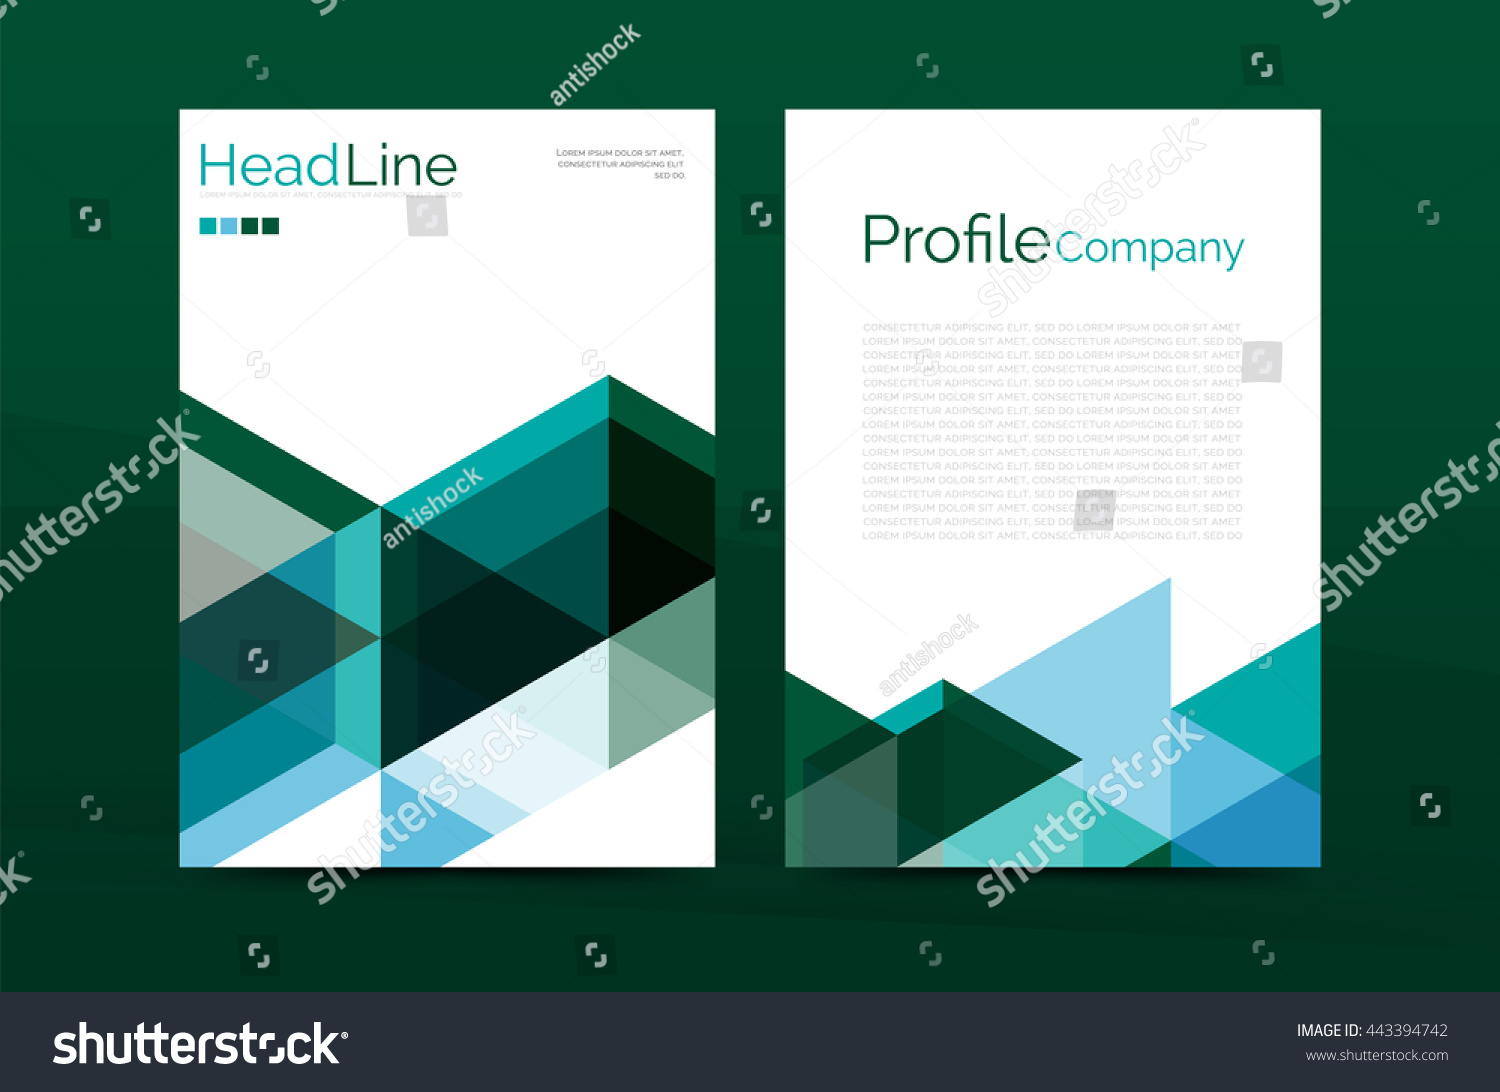 color business brochure cover template annual report front page color business brochure cover template annual report front page a4 size leaflet abstract